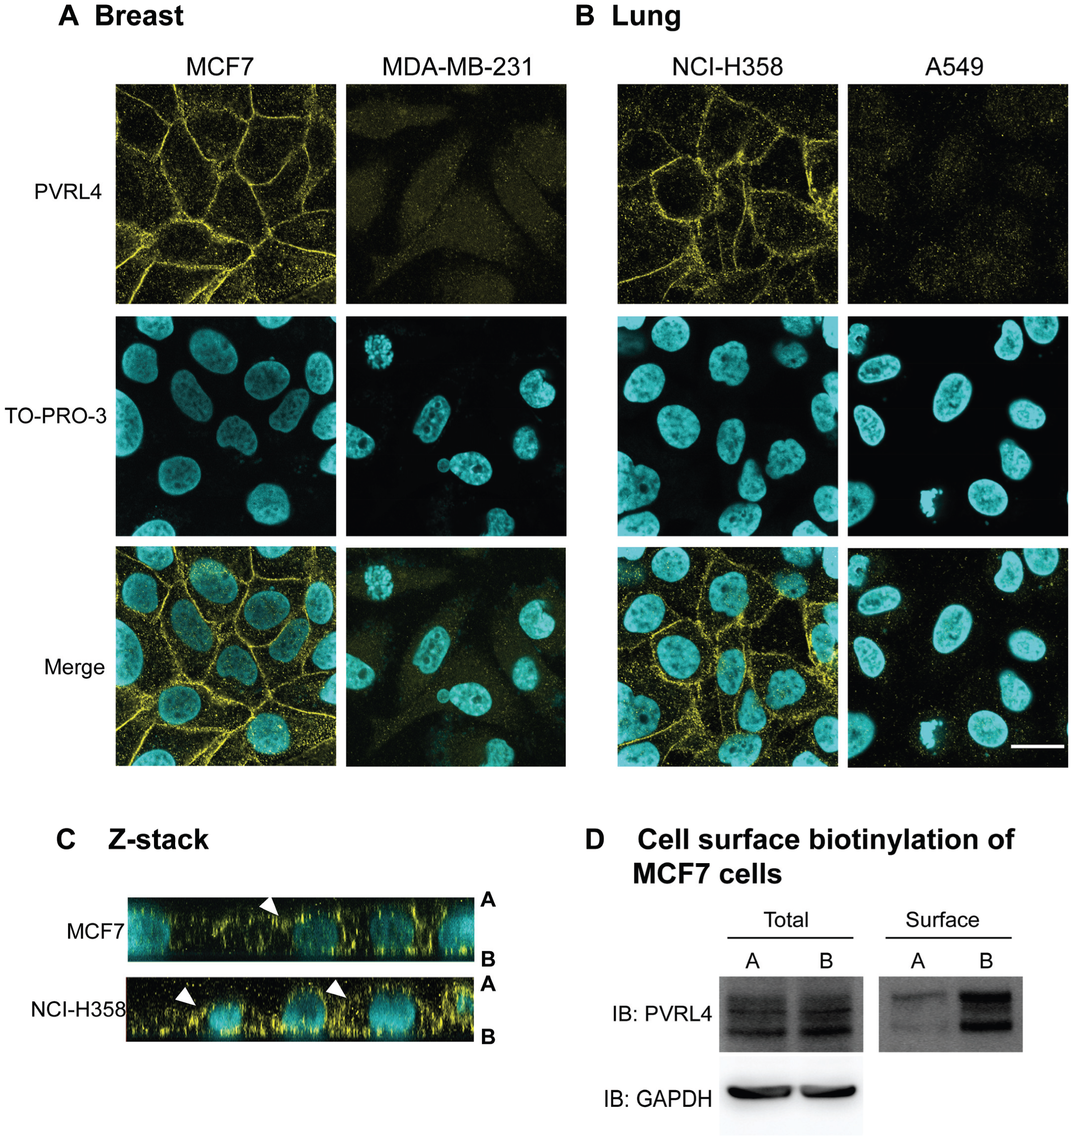 PVRL4 is localized to both the apical and basolateral surfaces in MCF7 and NCI-H358 cancer cells.